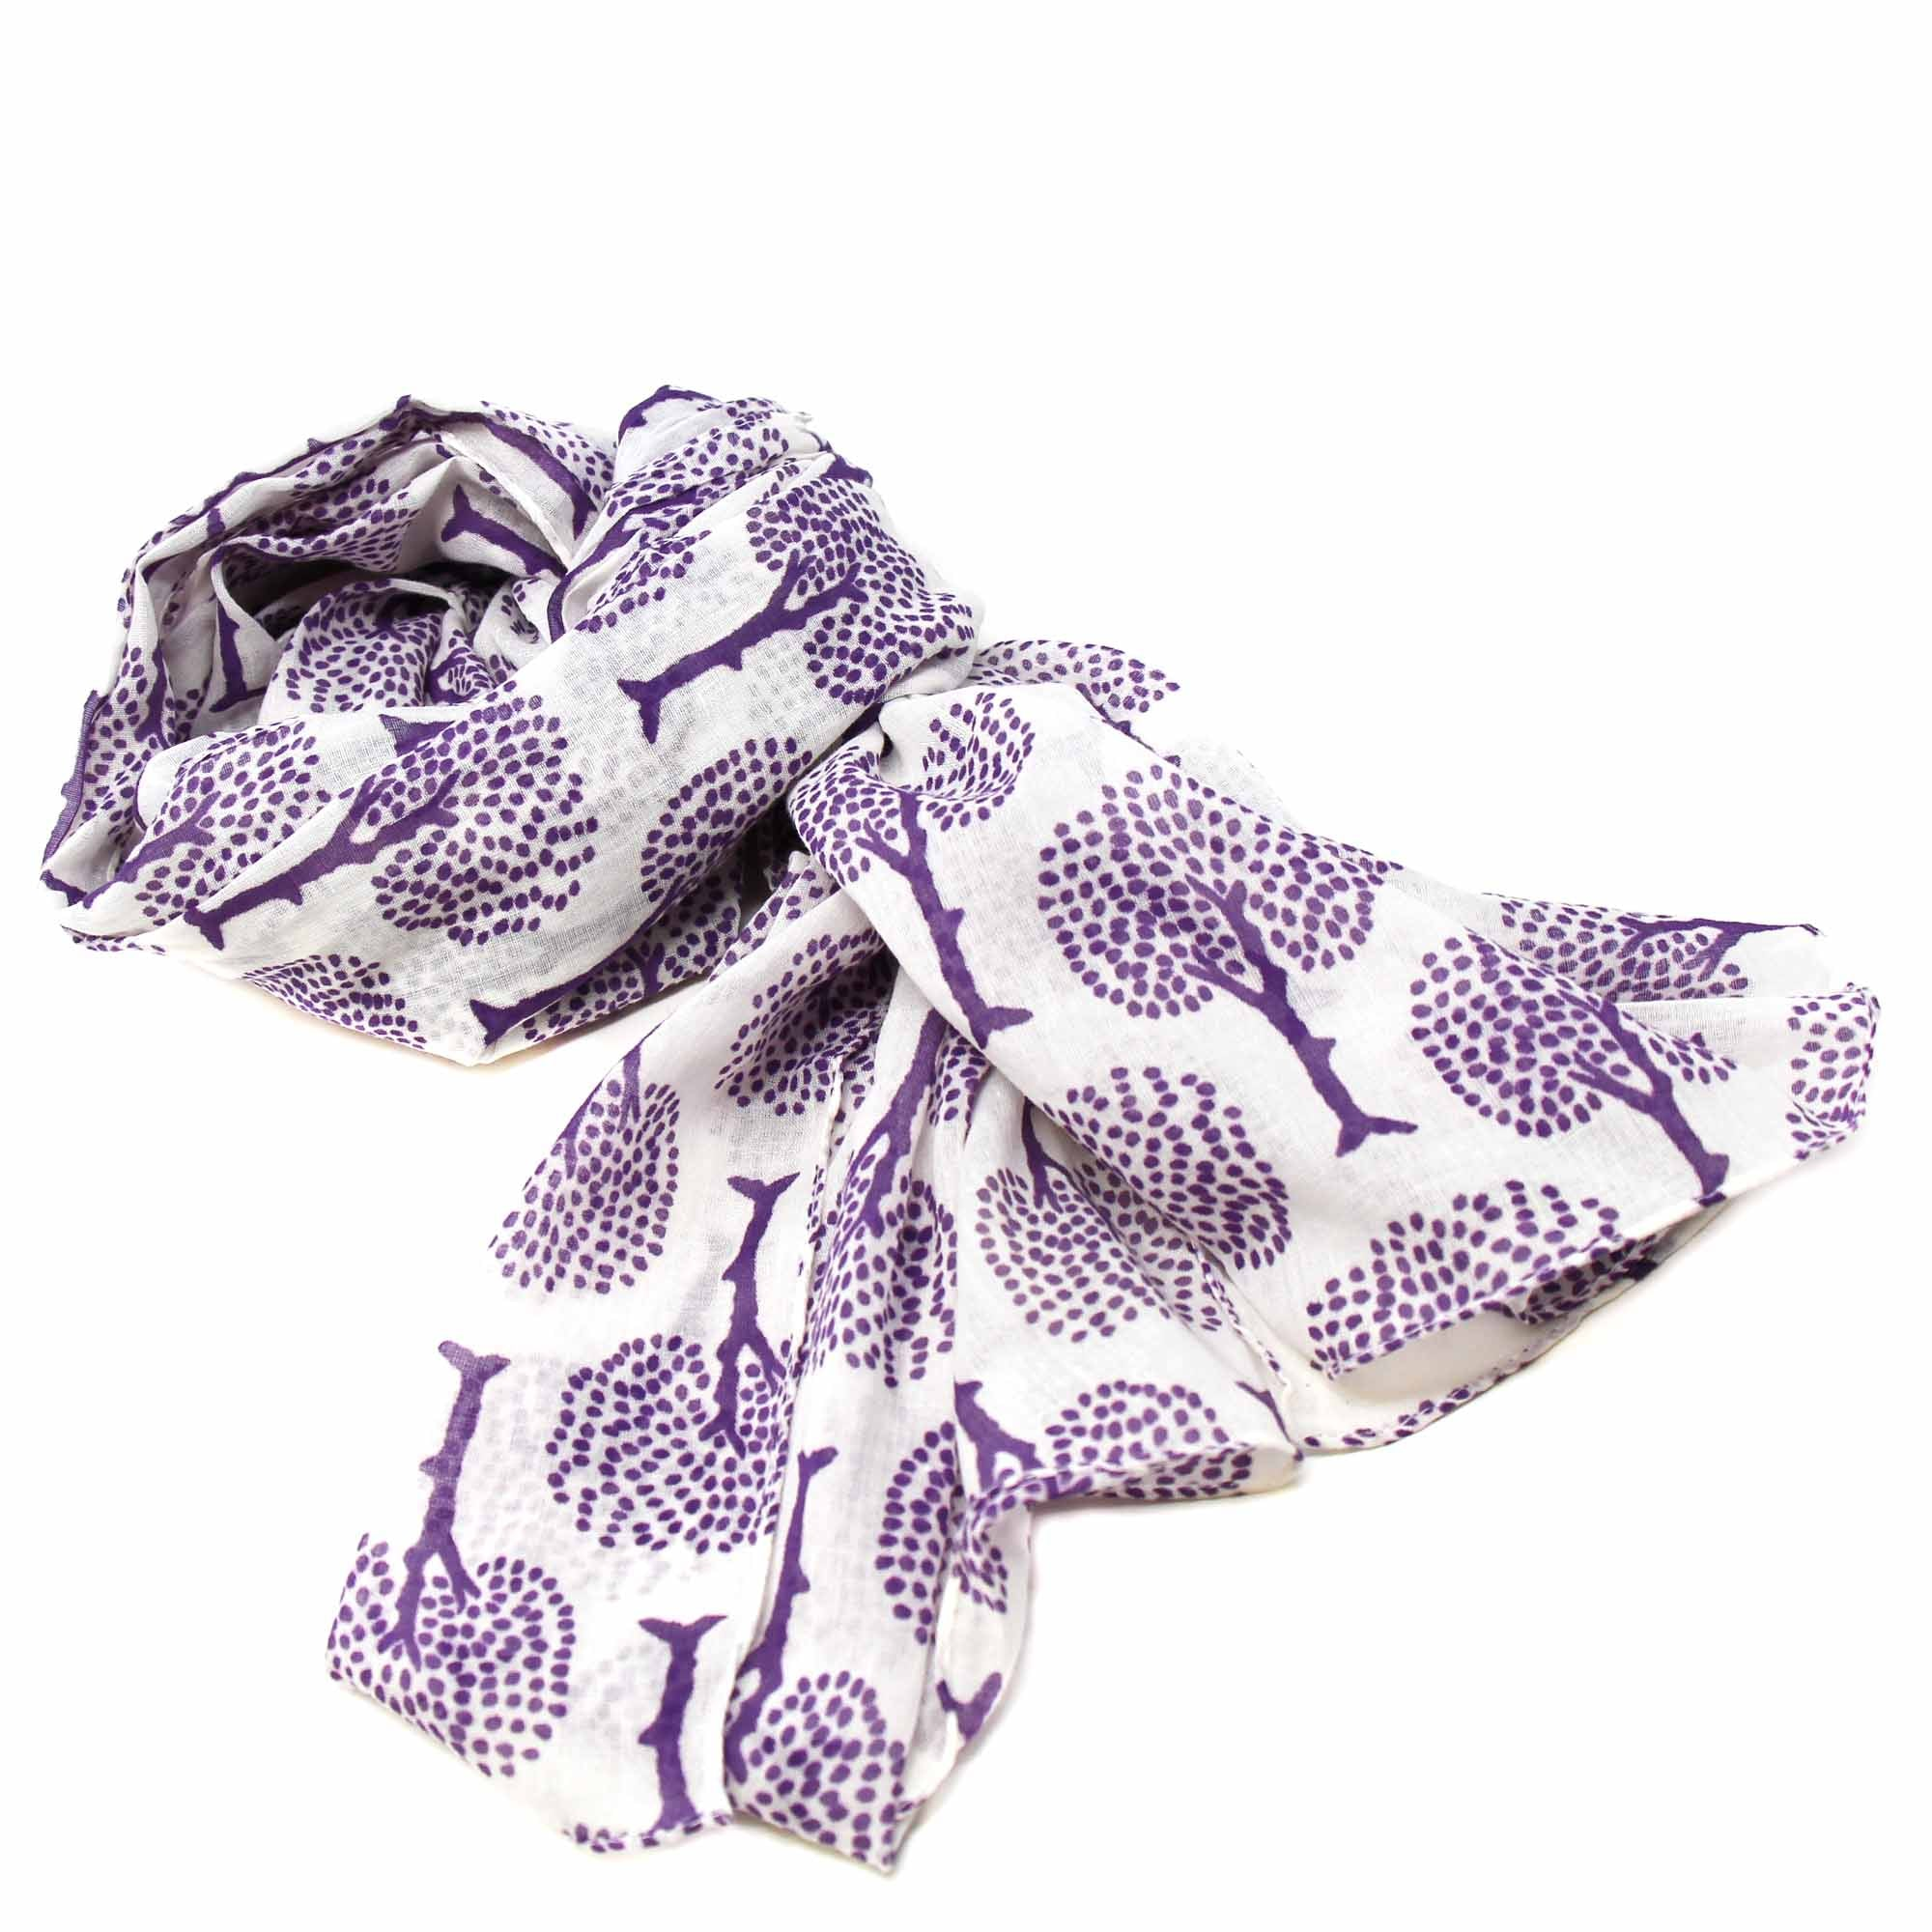 Hand-printed Cotton Scarf, Tree of Life Design